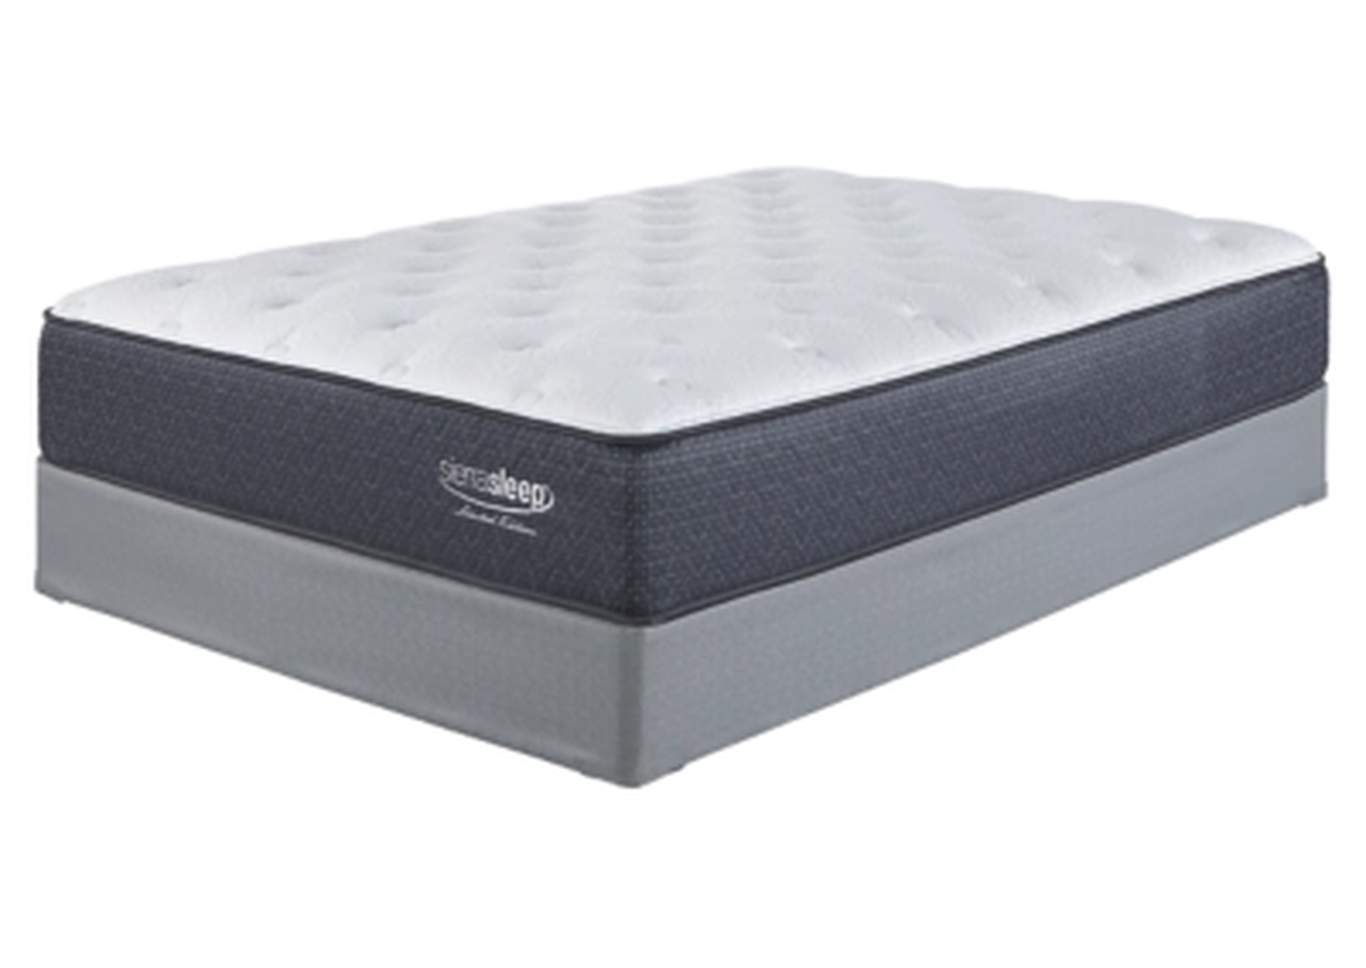 Limited Edition Plush White King Mattress,Sierra Sleep by Ashley